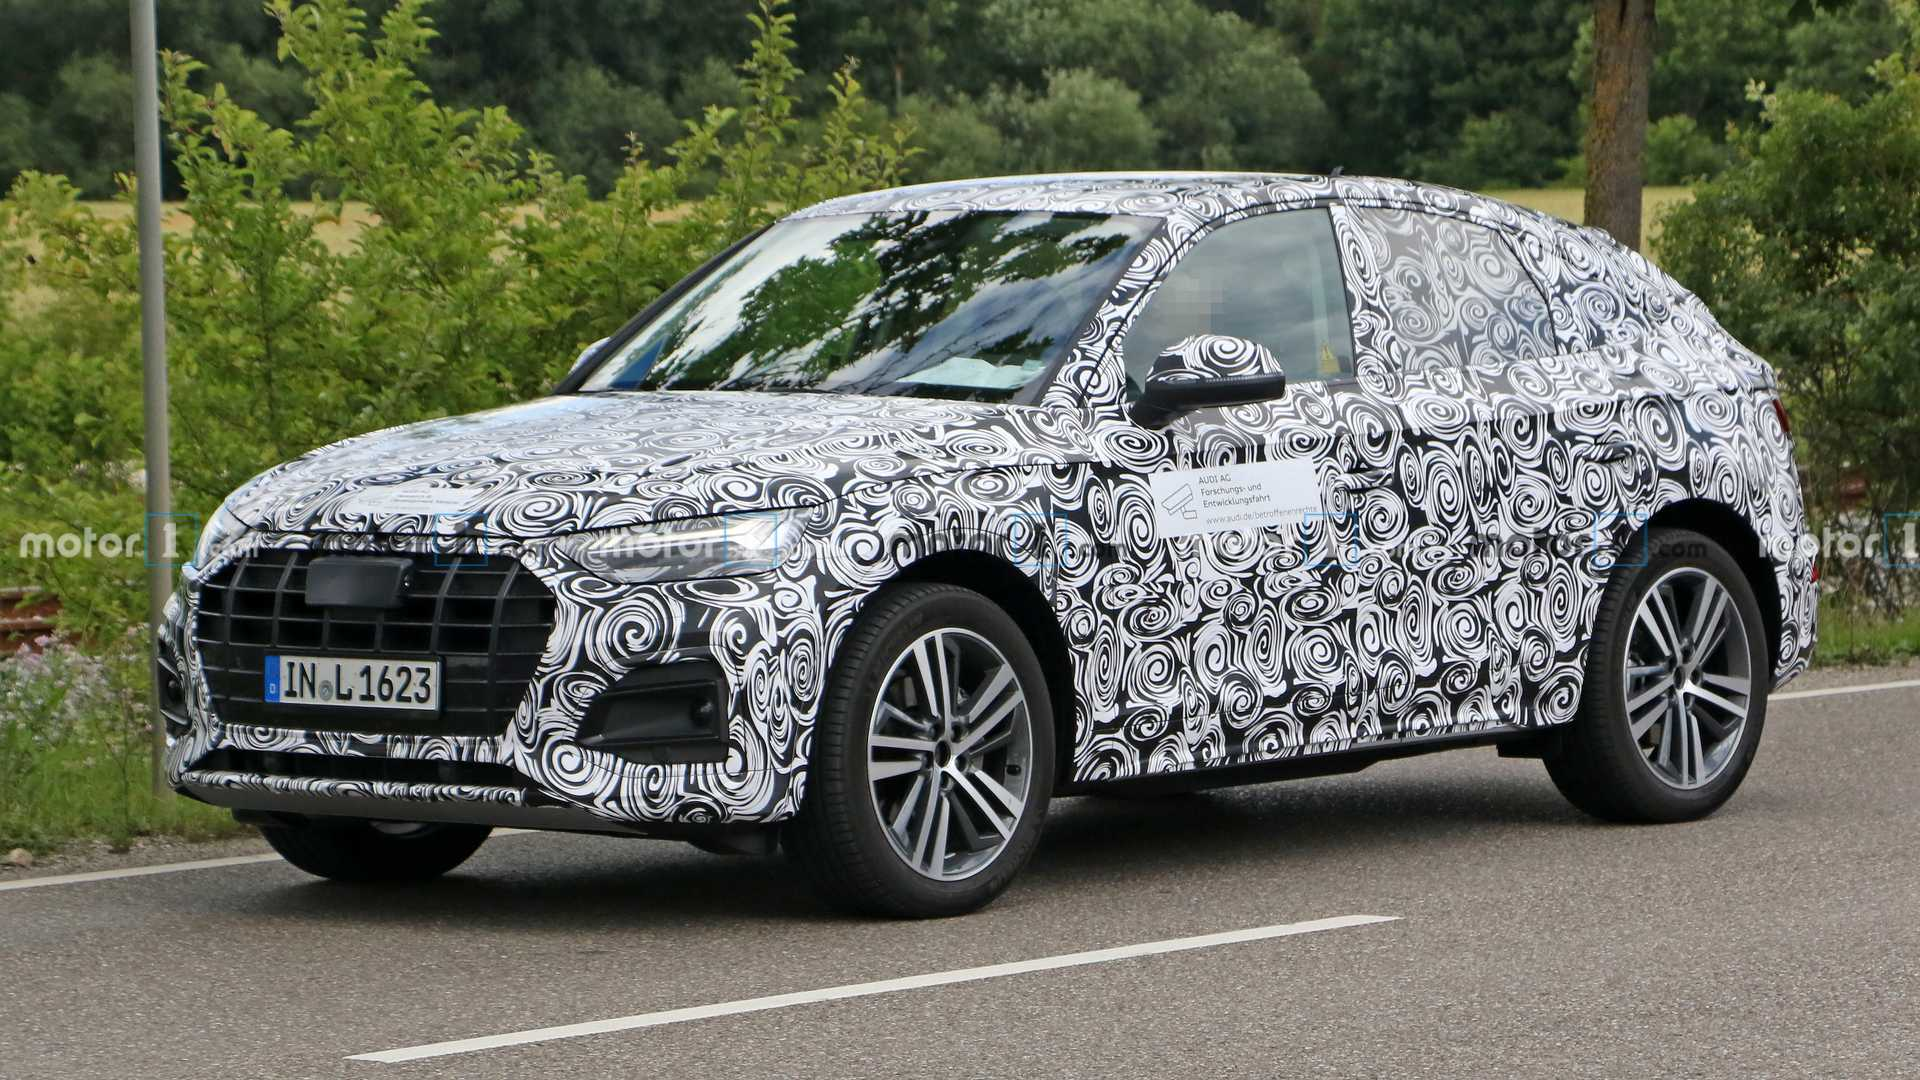 """Initially, Audi had only used the name """"Sportback"""" for its light passenger cars, while its coupe-shaped SUVs received """"Q plus even number"""" names, such as Q2 or Q8. Things changed with the arrival of the Q3 Sportback, then the e-tron Sportback, and finally the Q5 Sportback revealed today."""